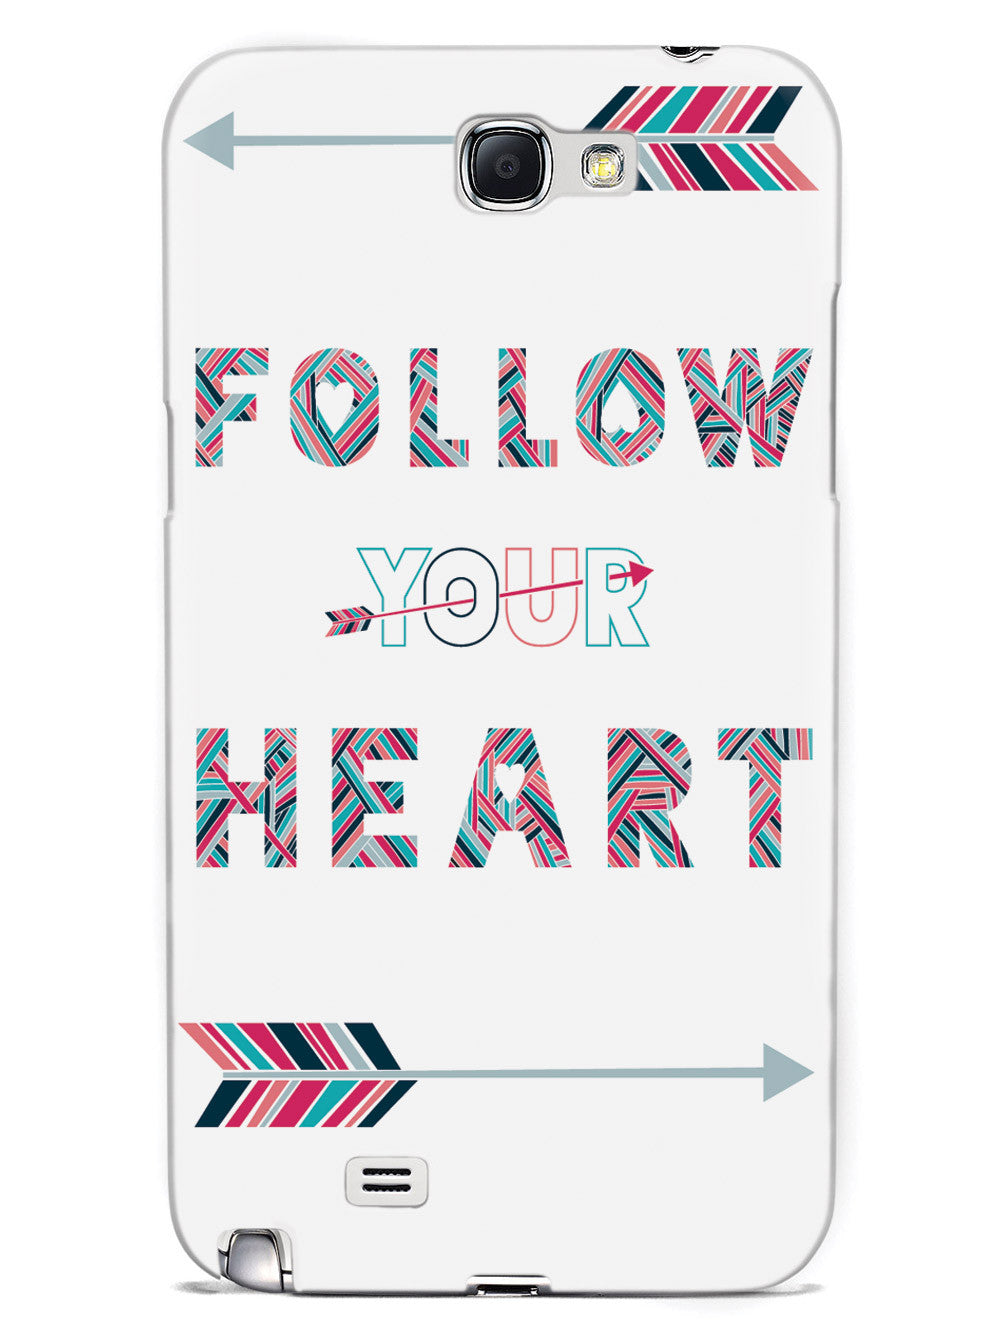 Follow Your Heart Case